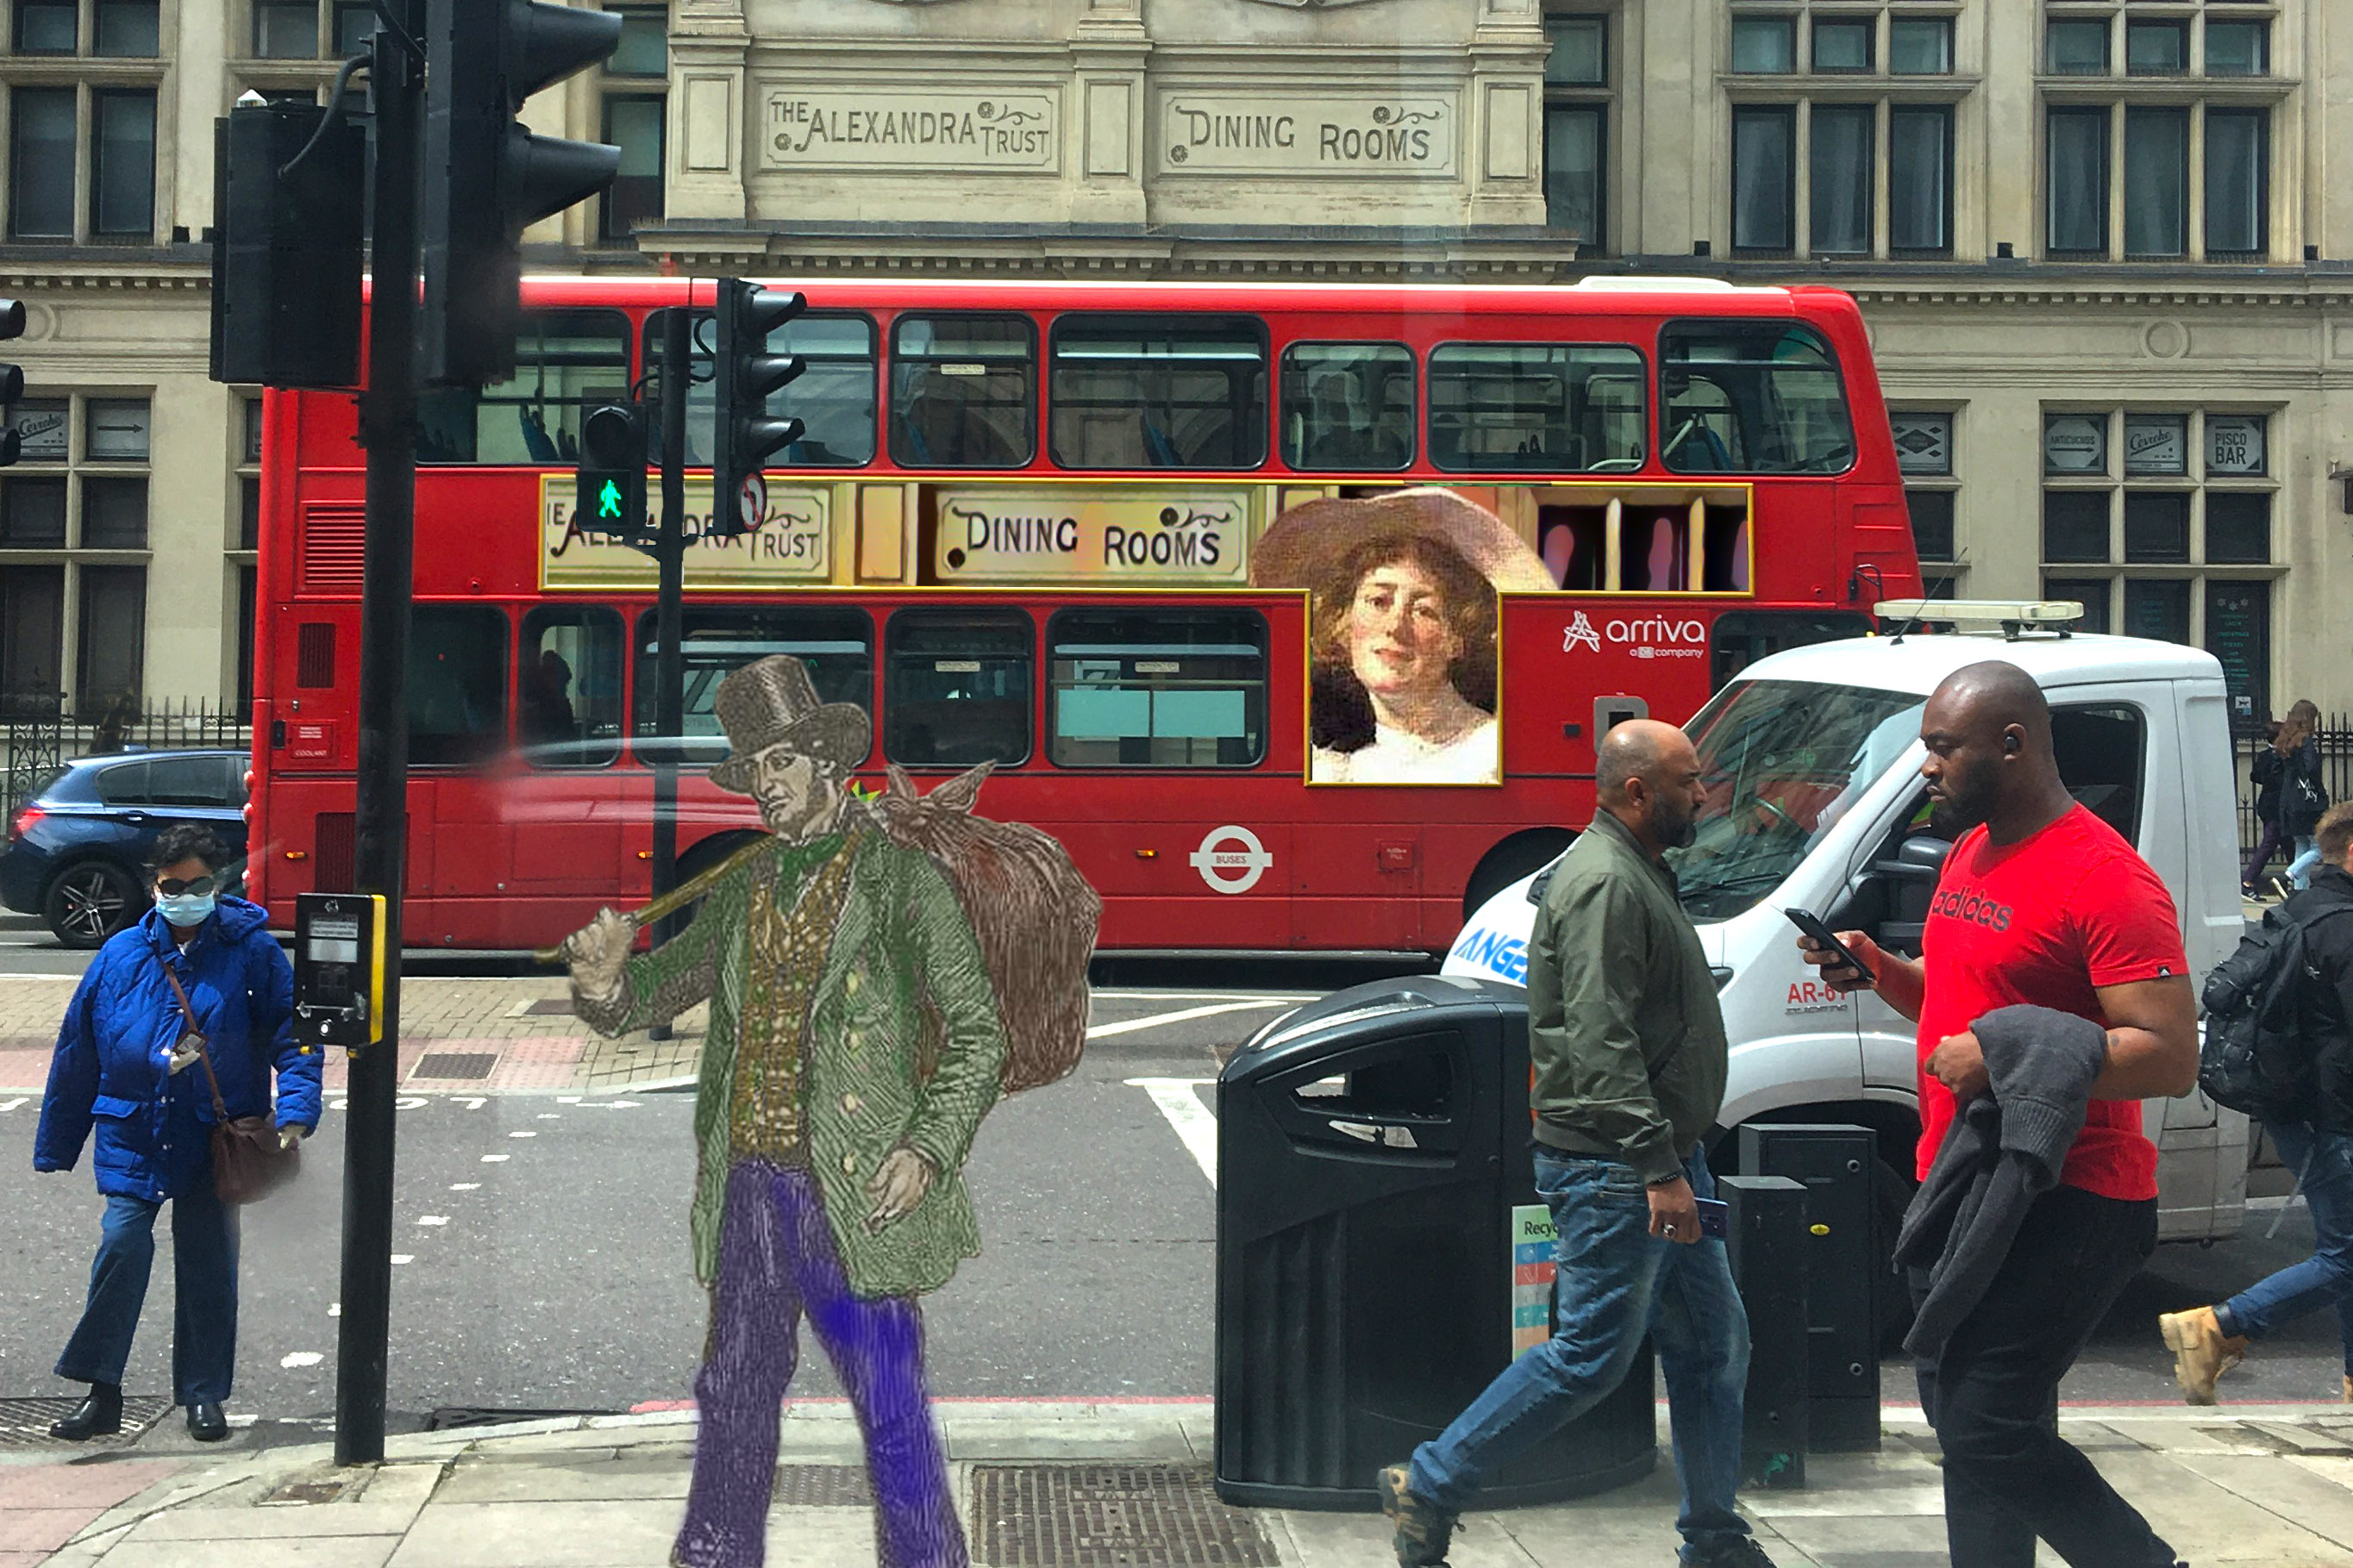 """Hand-coloured figure of a man carrying a bindle from """"British Workman"""" No. 9 (1855), p. 35 crossing City Road, where there is a bus with an advertisement featuring the former Alexandra Trust Dining Rooms sign and a figure from Frank Bramley's """"Friends"""" (n.d.), a painting of his wife, Katherine, and her dog"""